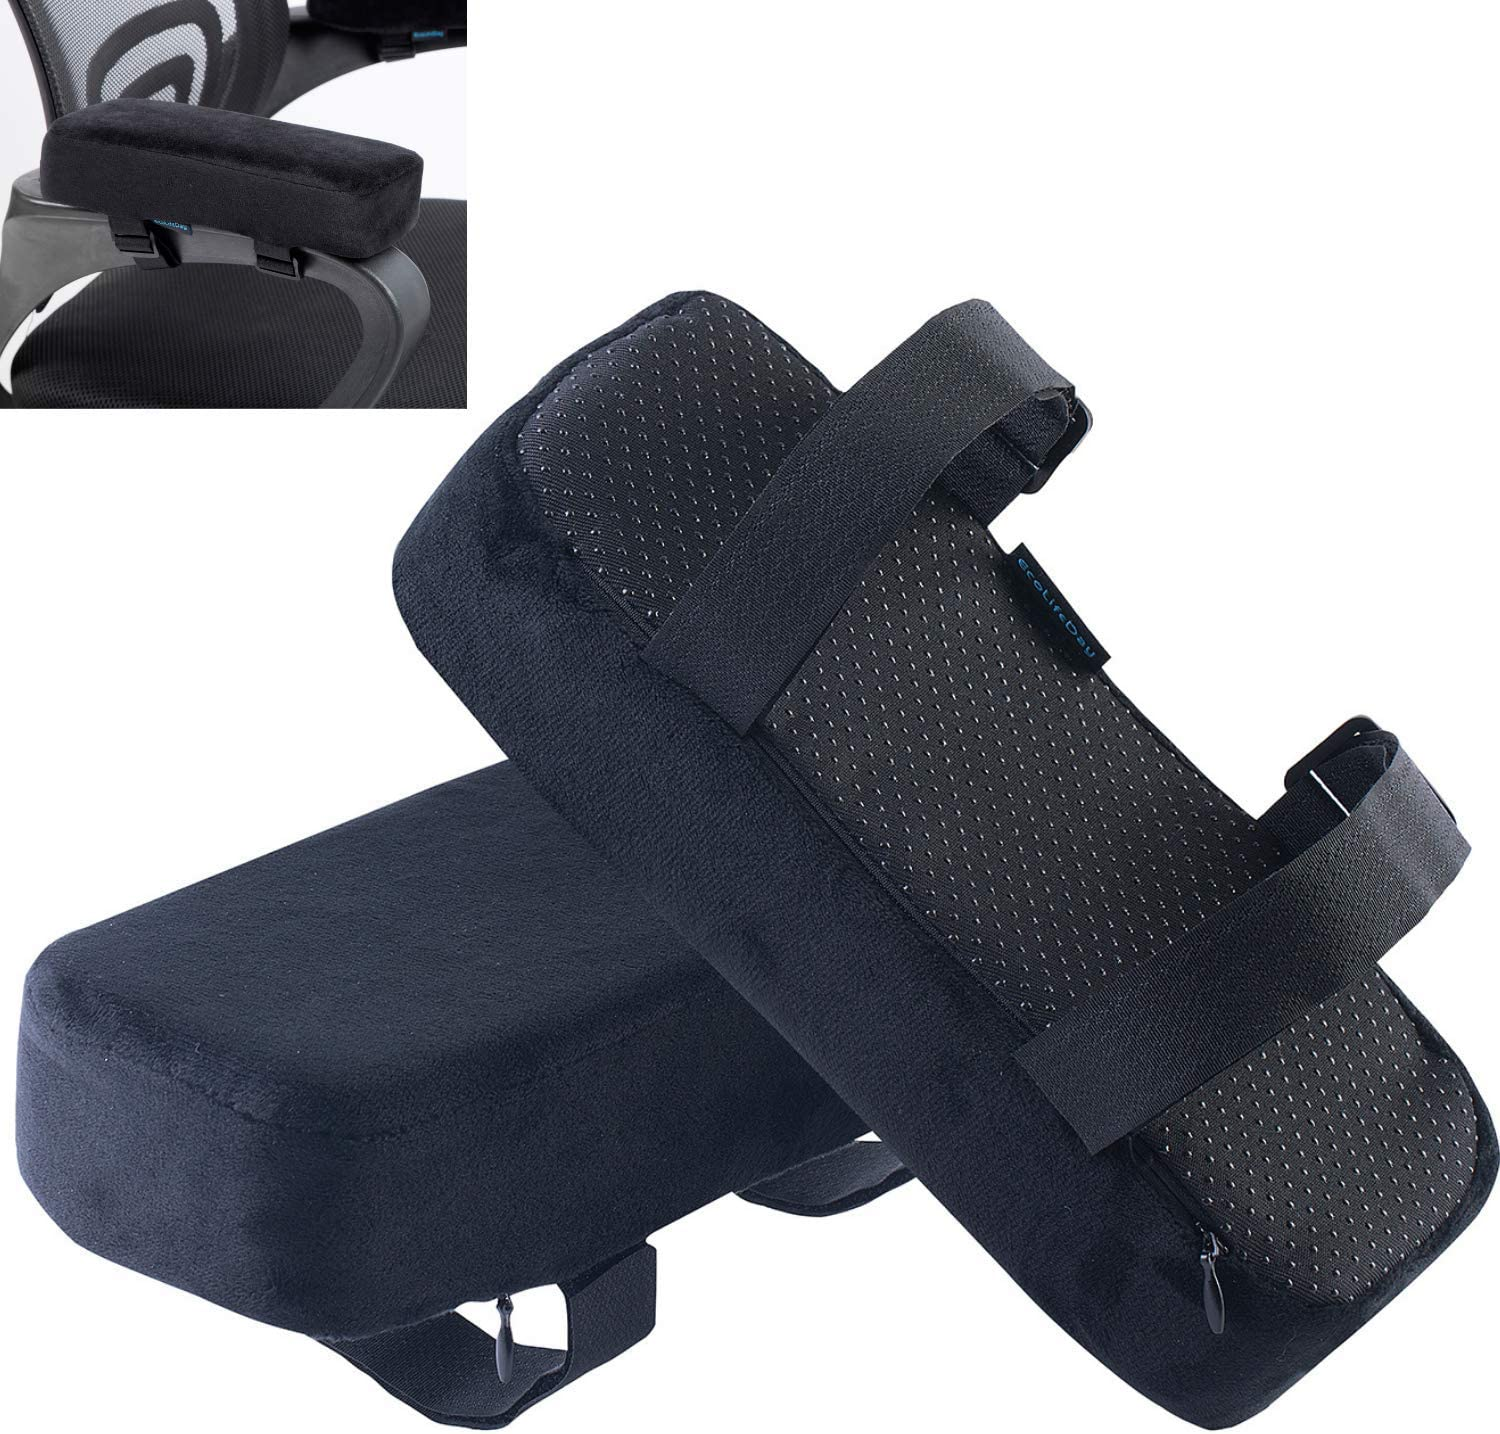 EcoLifeDay Extra Thick Chair armrest Cushions Elbow Pillow Pressure Relief Office Chair Gaming Chair armrest with Memory Foam armrest Pads 2-Piece Set of Chair : Office Products